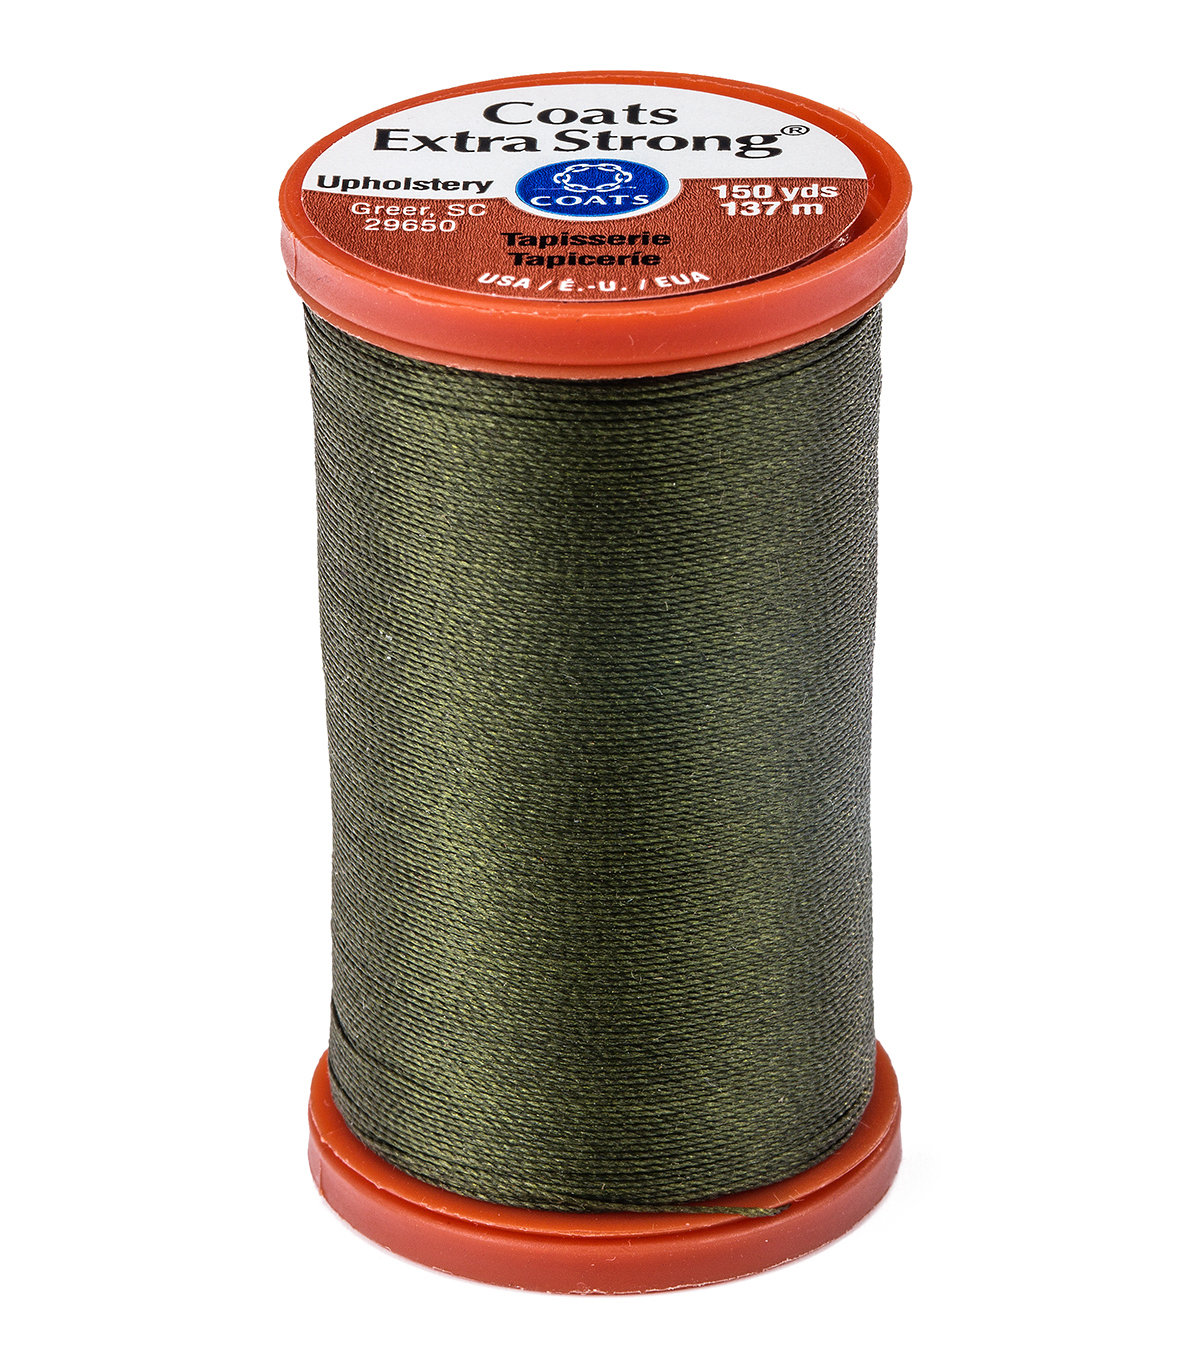 Coats & Clark Extra Strong & Upholstery Thread 150 yd , Bronze Green